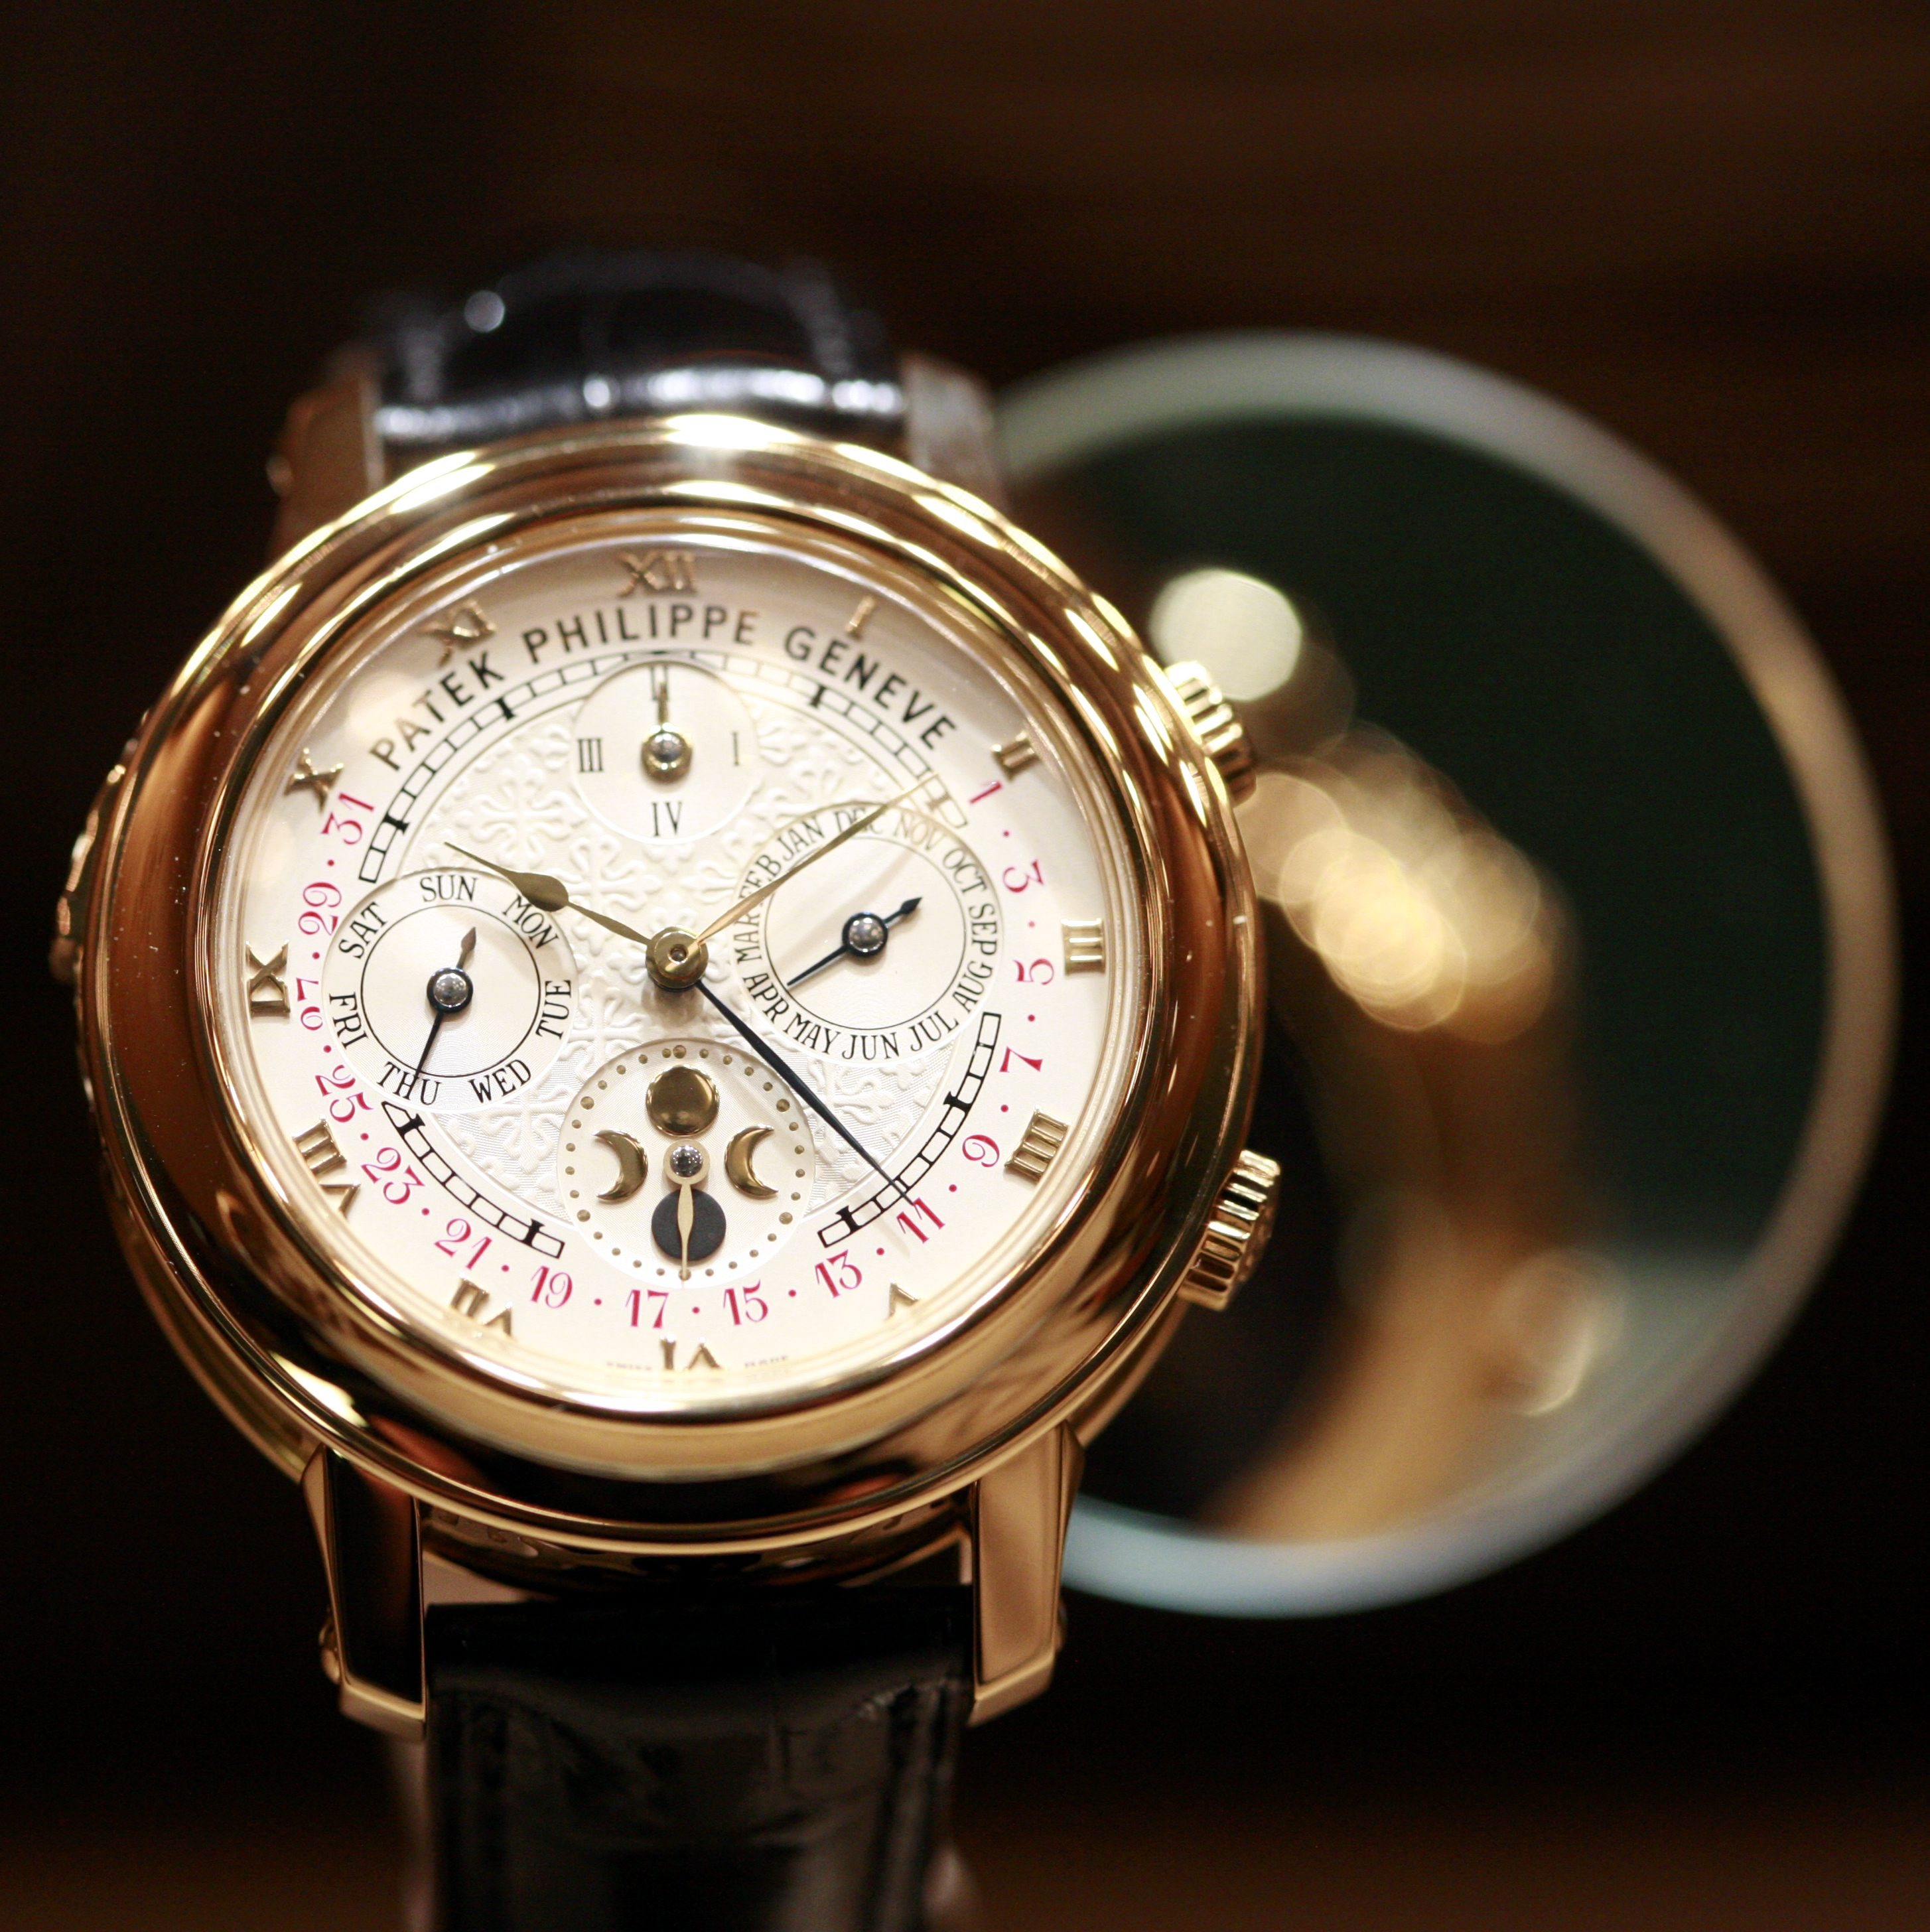 6b982637df4 Reviewing The Most Popular Patek Philippe World Time Chronograph Replica  Watch Ref. 5930G - High Quality Replica Watches For Men